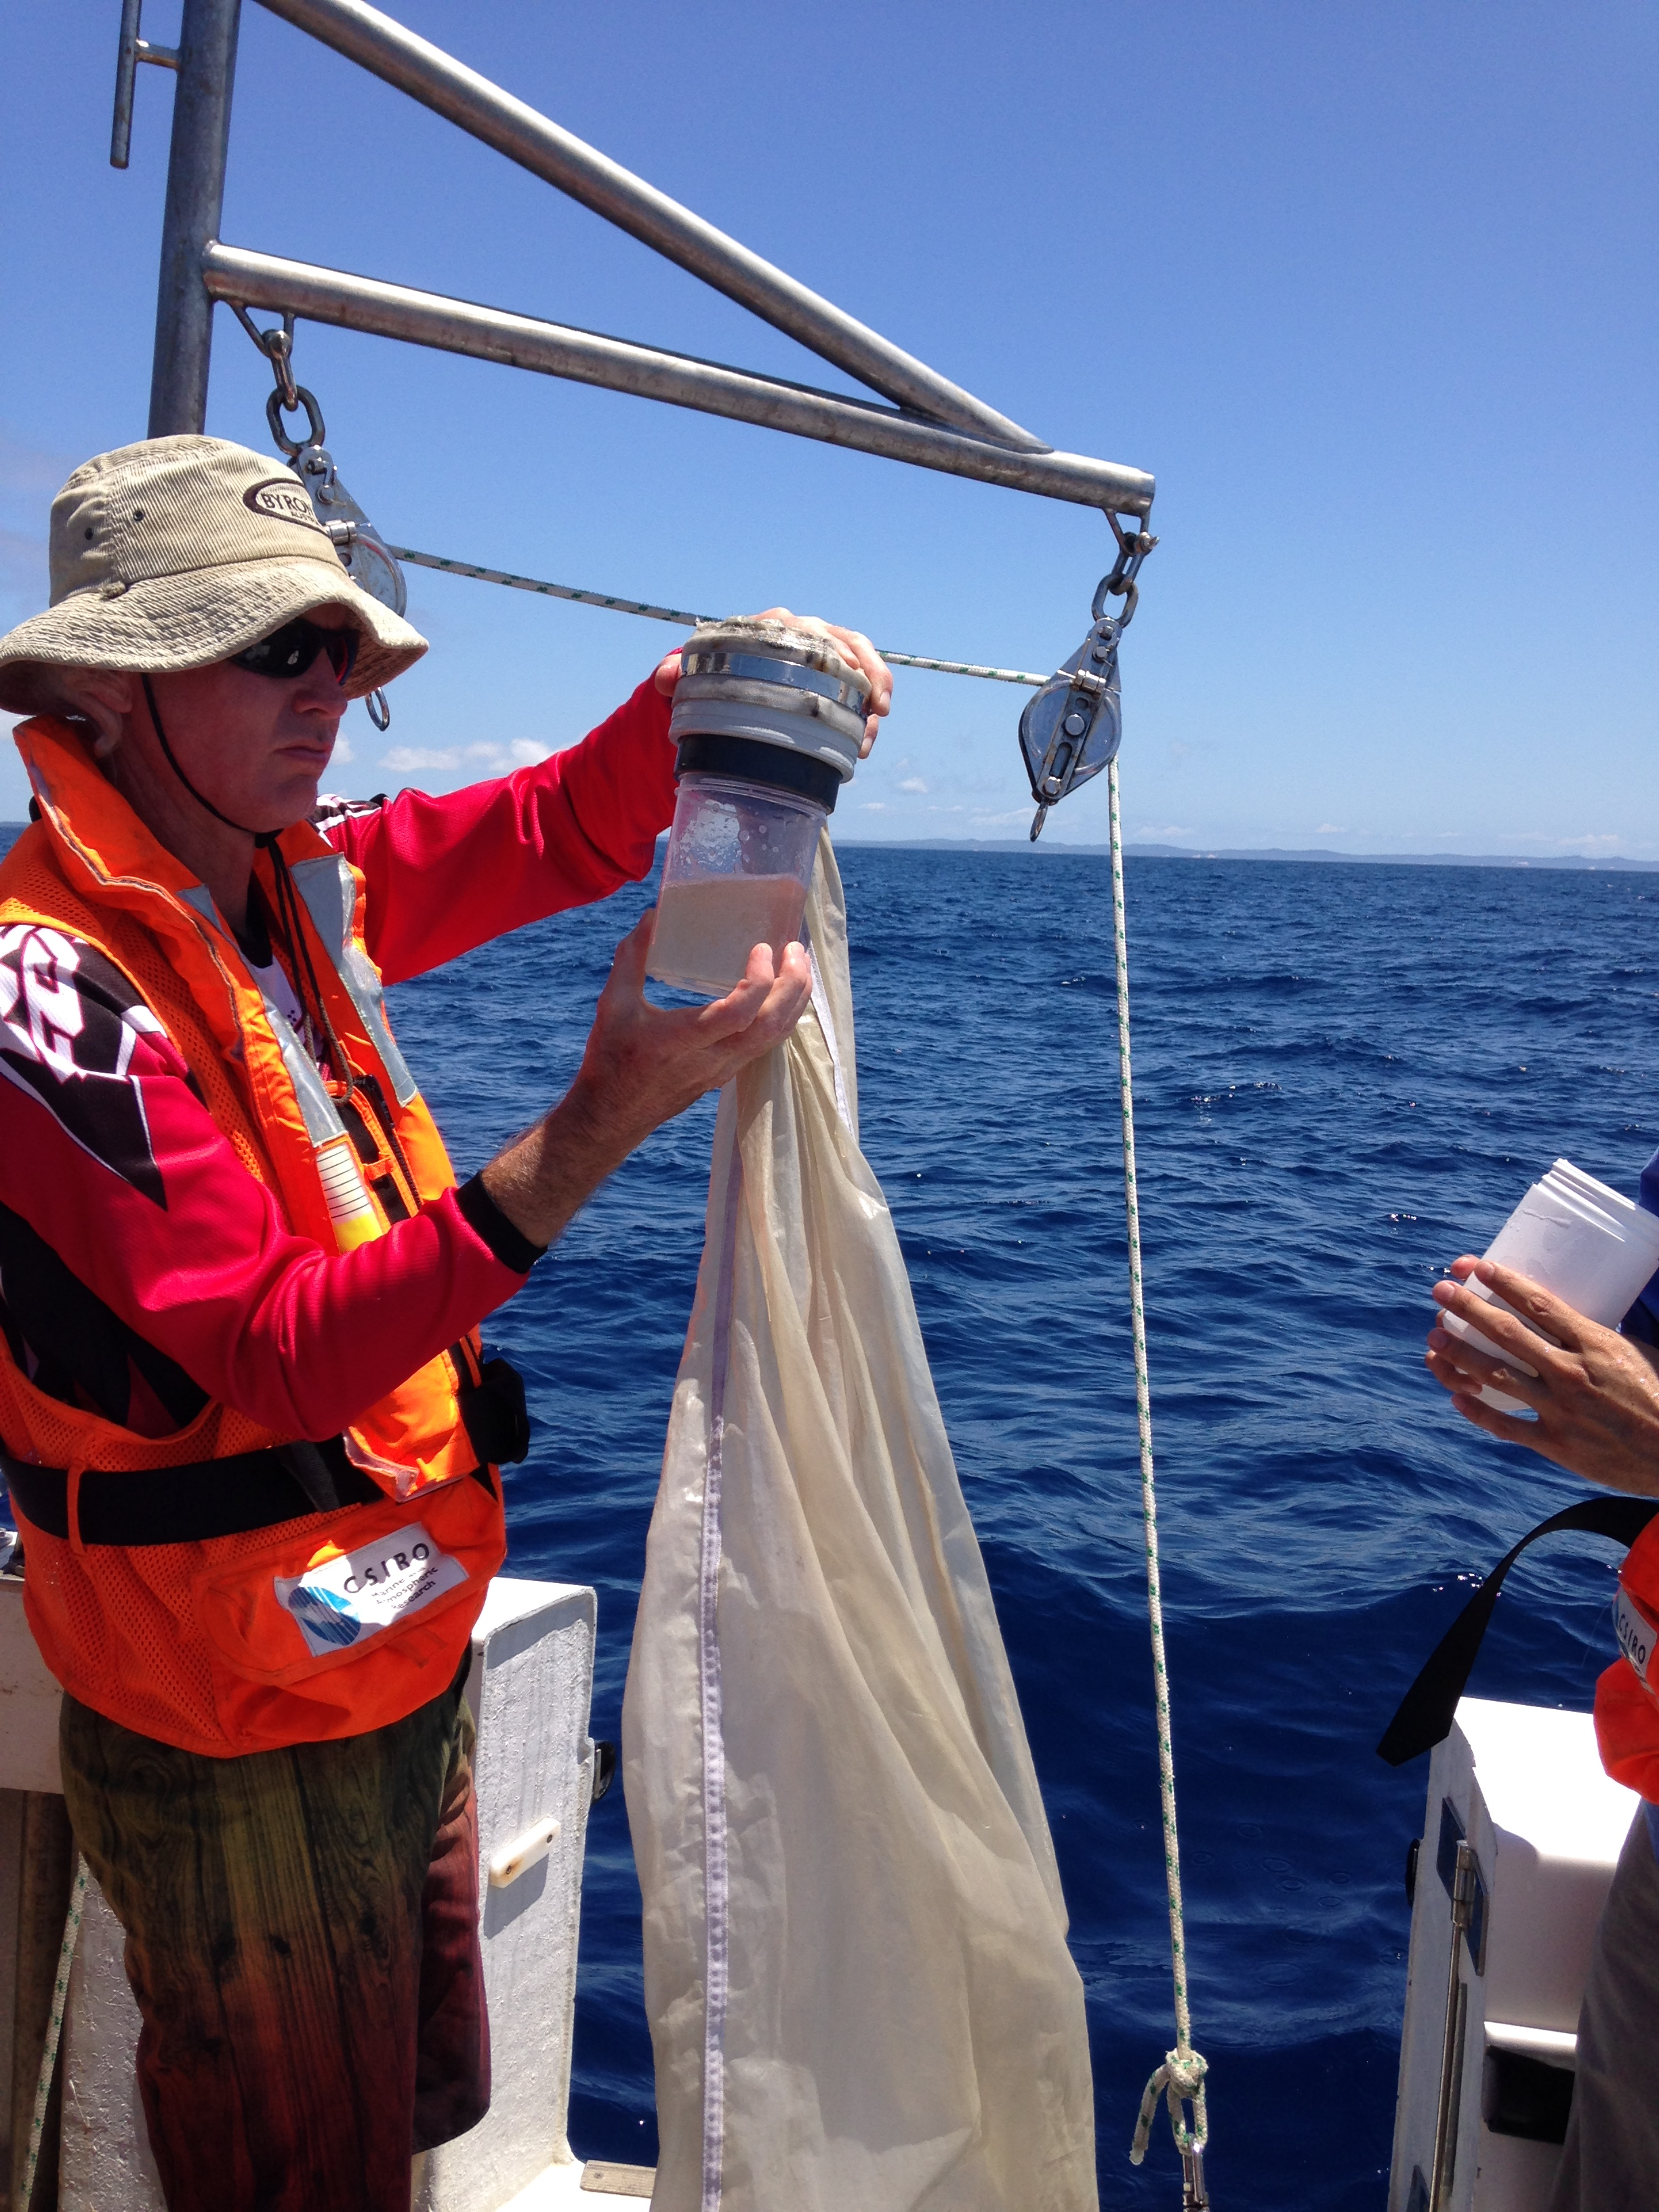 Man holds a zooplankton sample, seen standing on a boat with ocean in the distance.